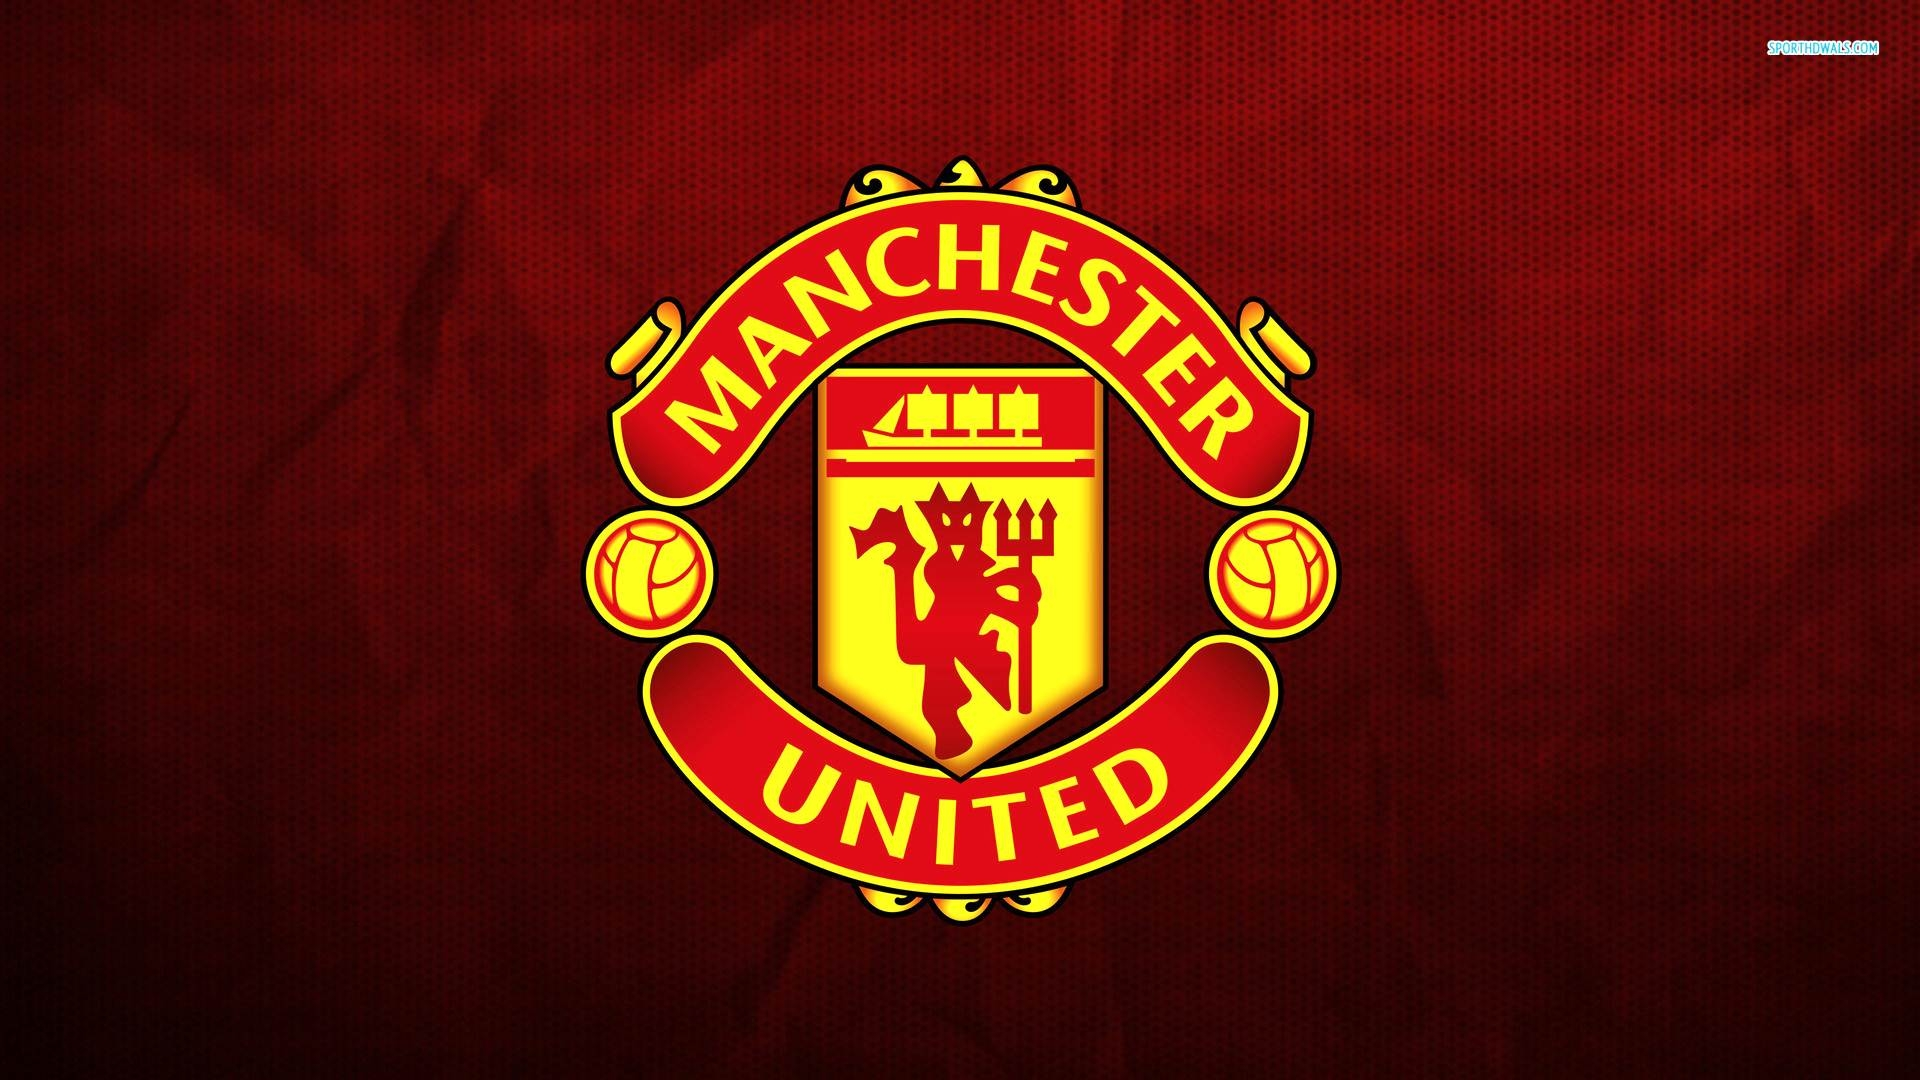 Best Manchester United Wallpaper Hd Man Utd Logo Hd